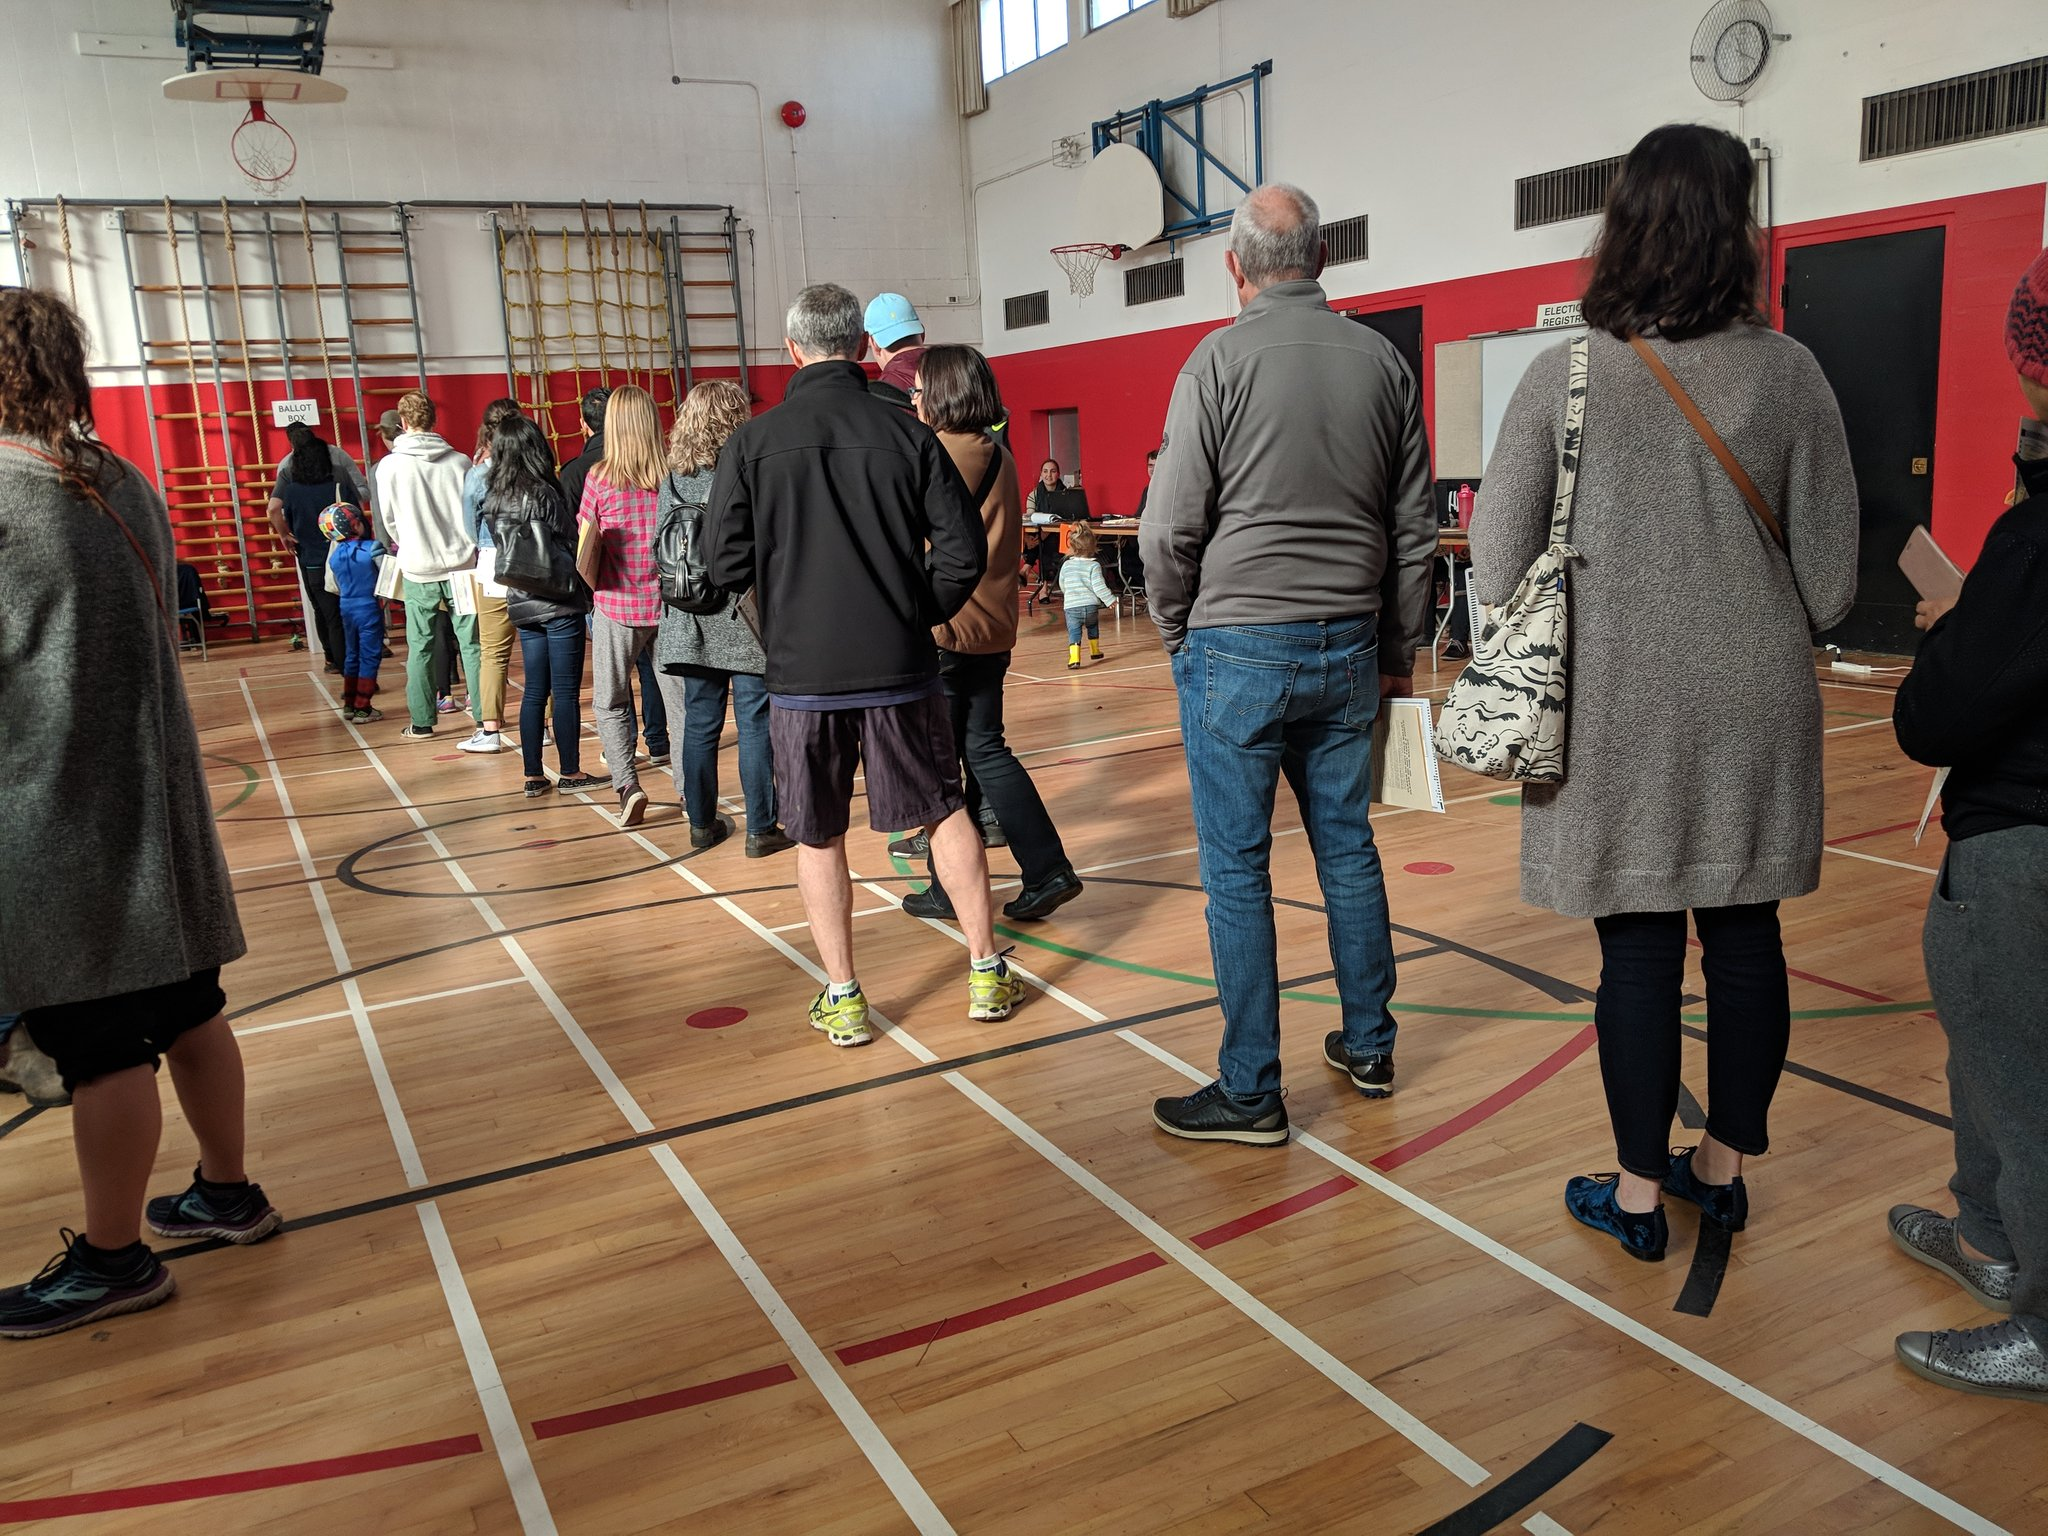 Some voters walk away from polls because of long lines